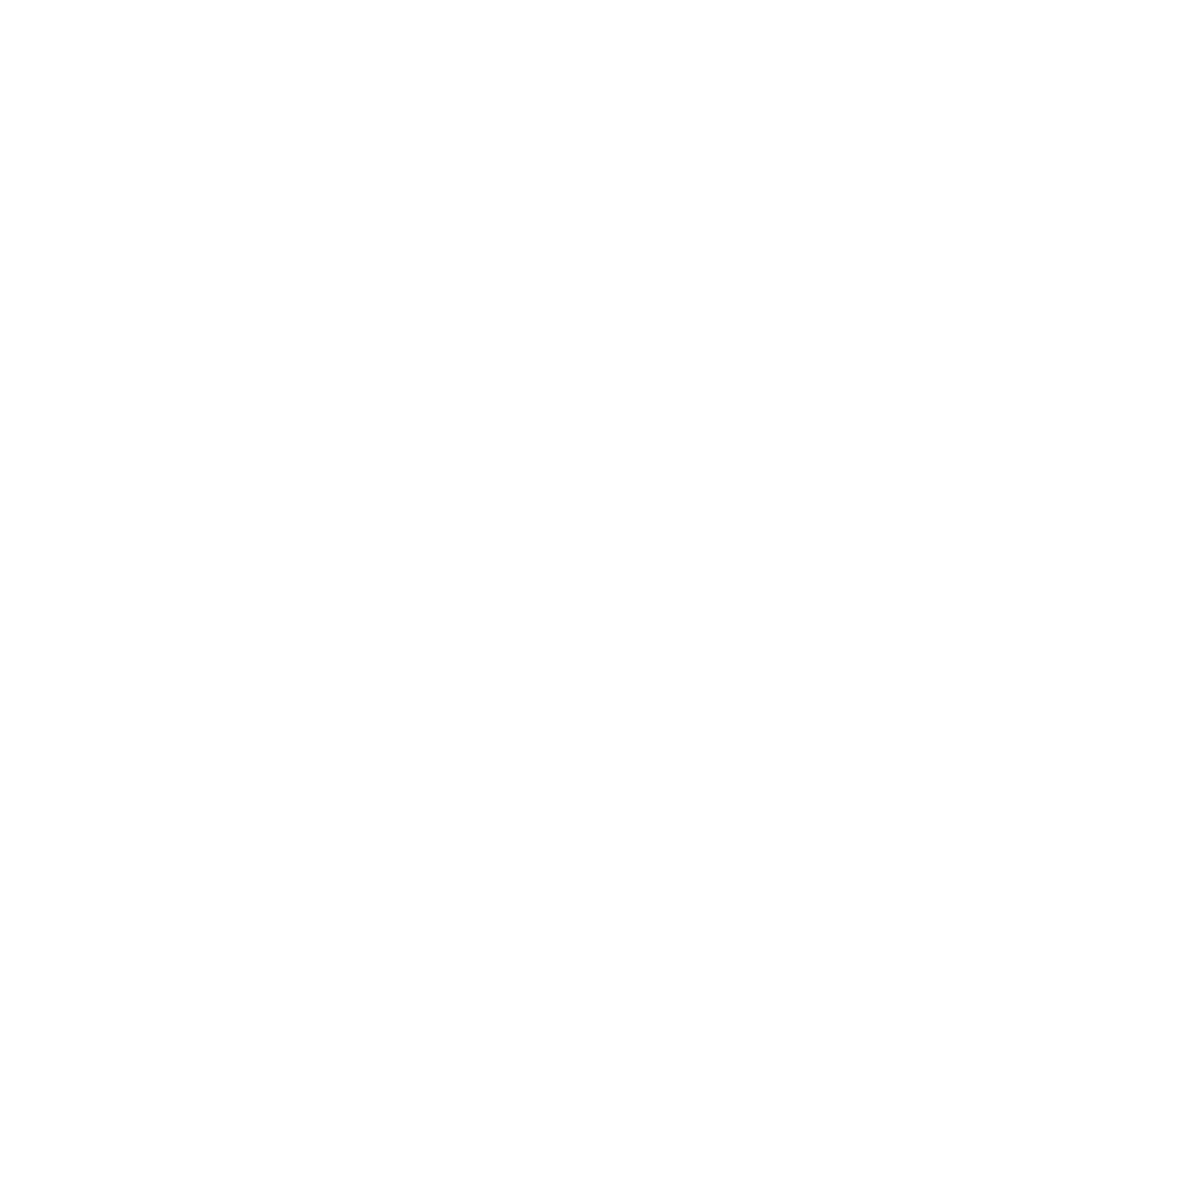 Las Tunas Family Dental Group